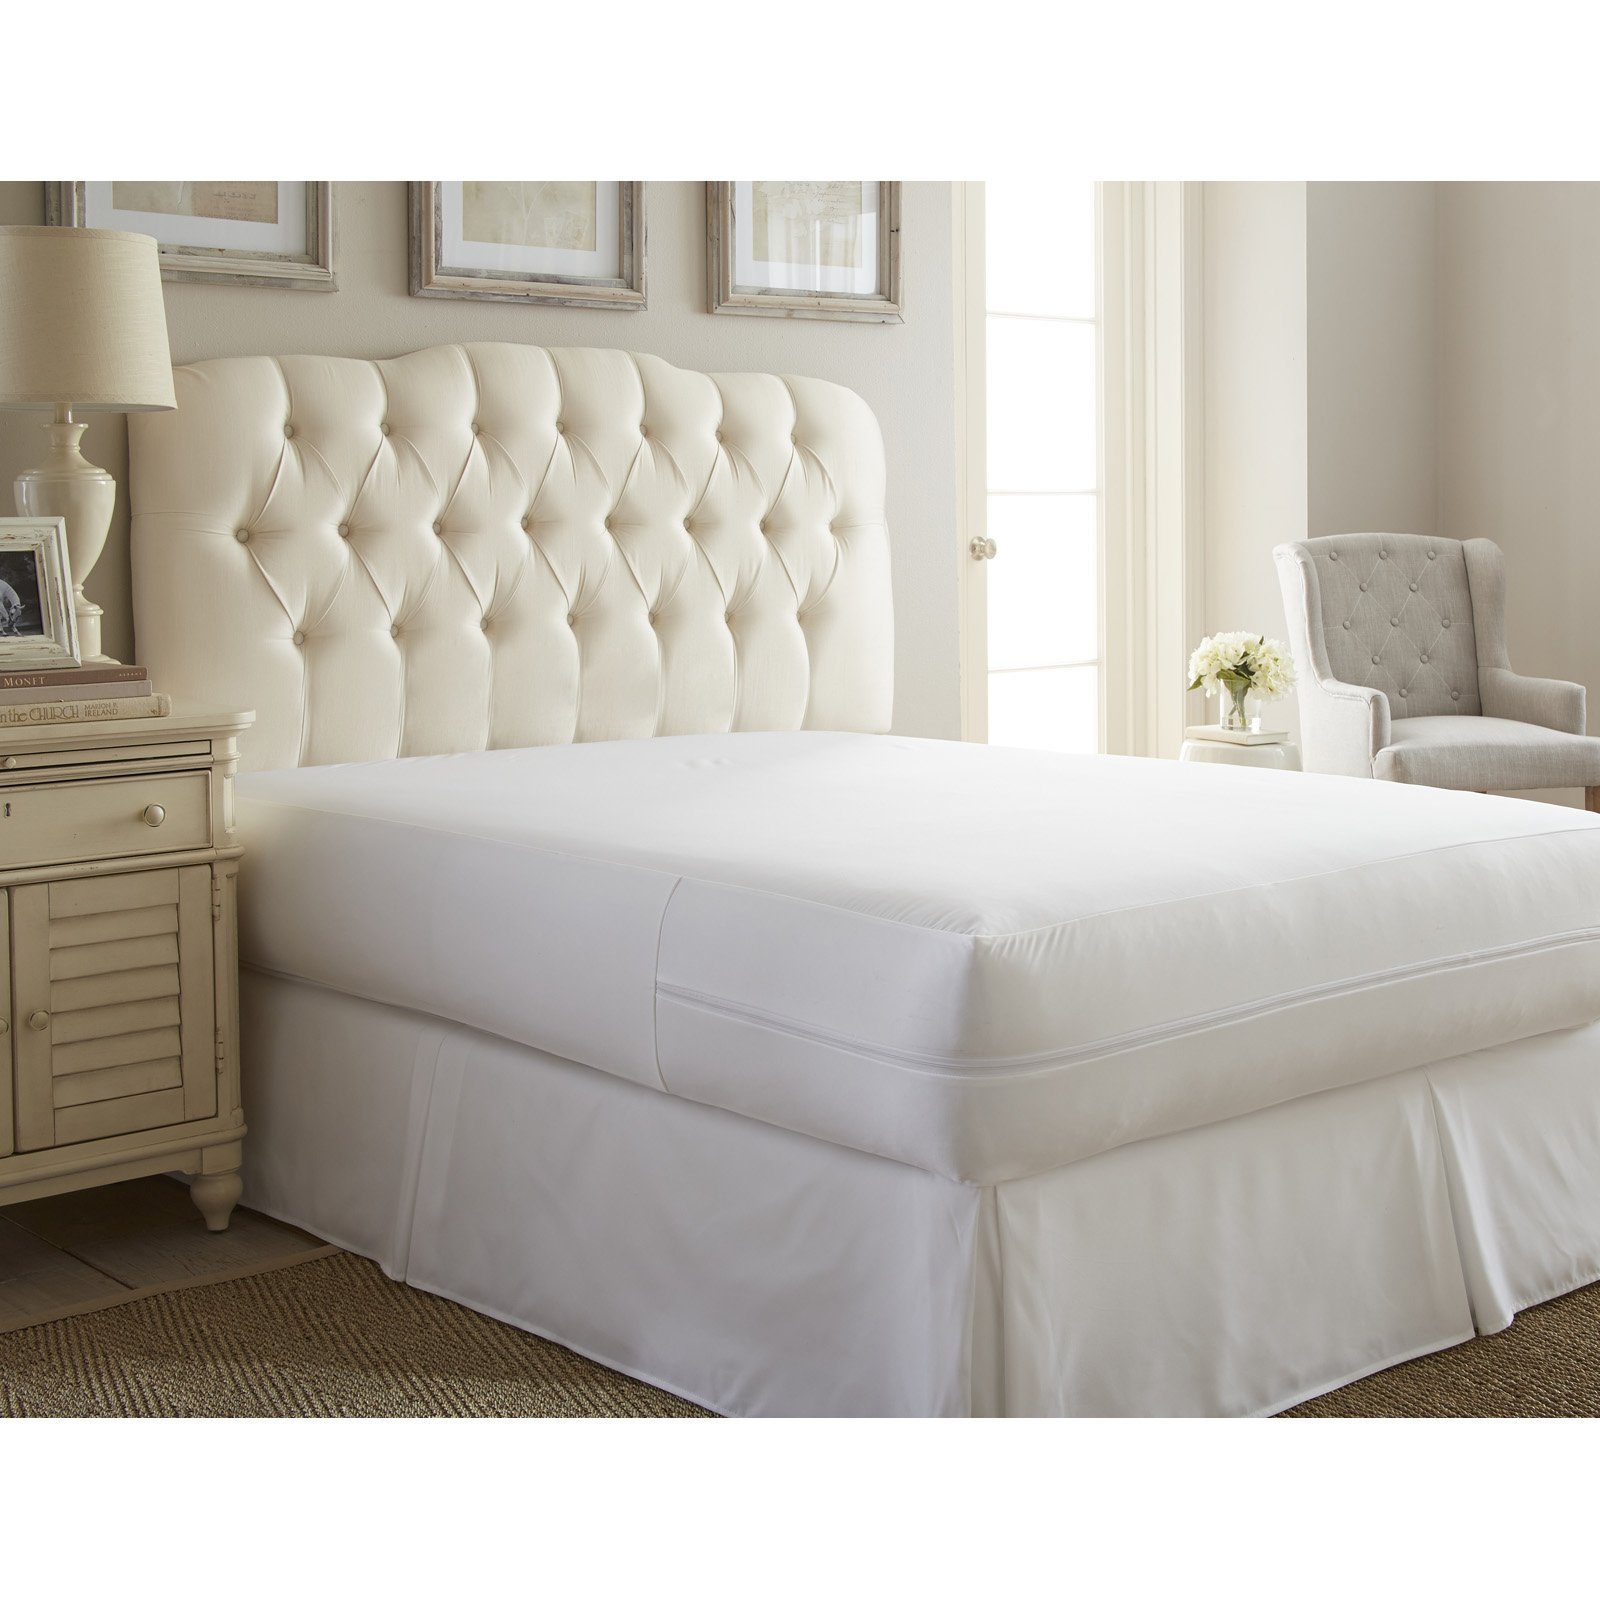 Simply Soft Zippered Mattress Protector by ienjoy Home by iEnjoy Bedding